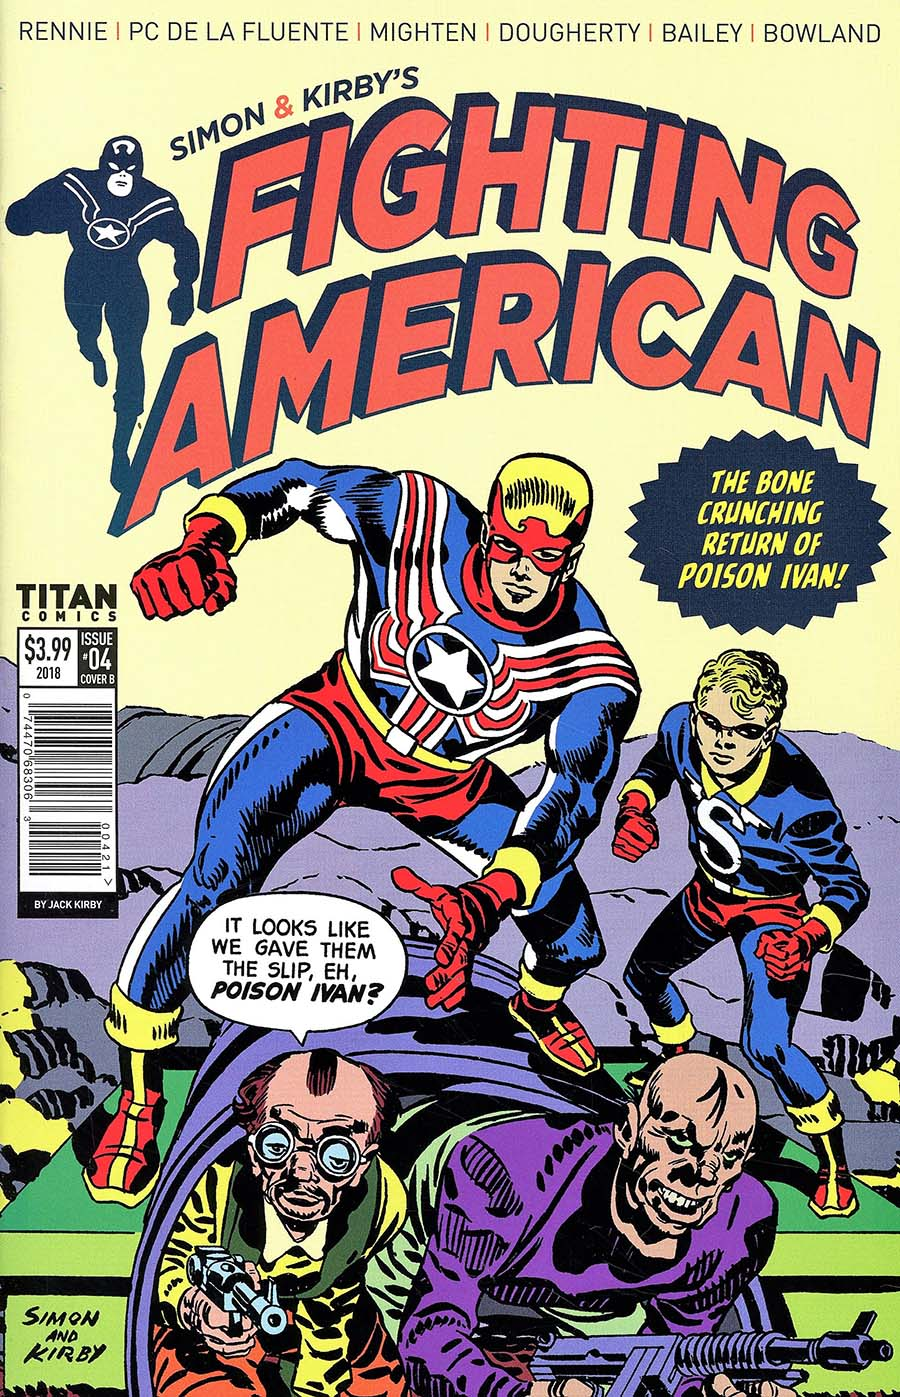 Fighting American Vol 4 #4 Cover B Variant Jack Kirby Cover